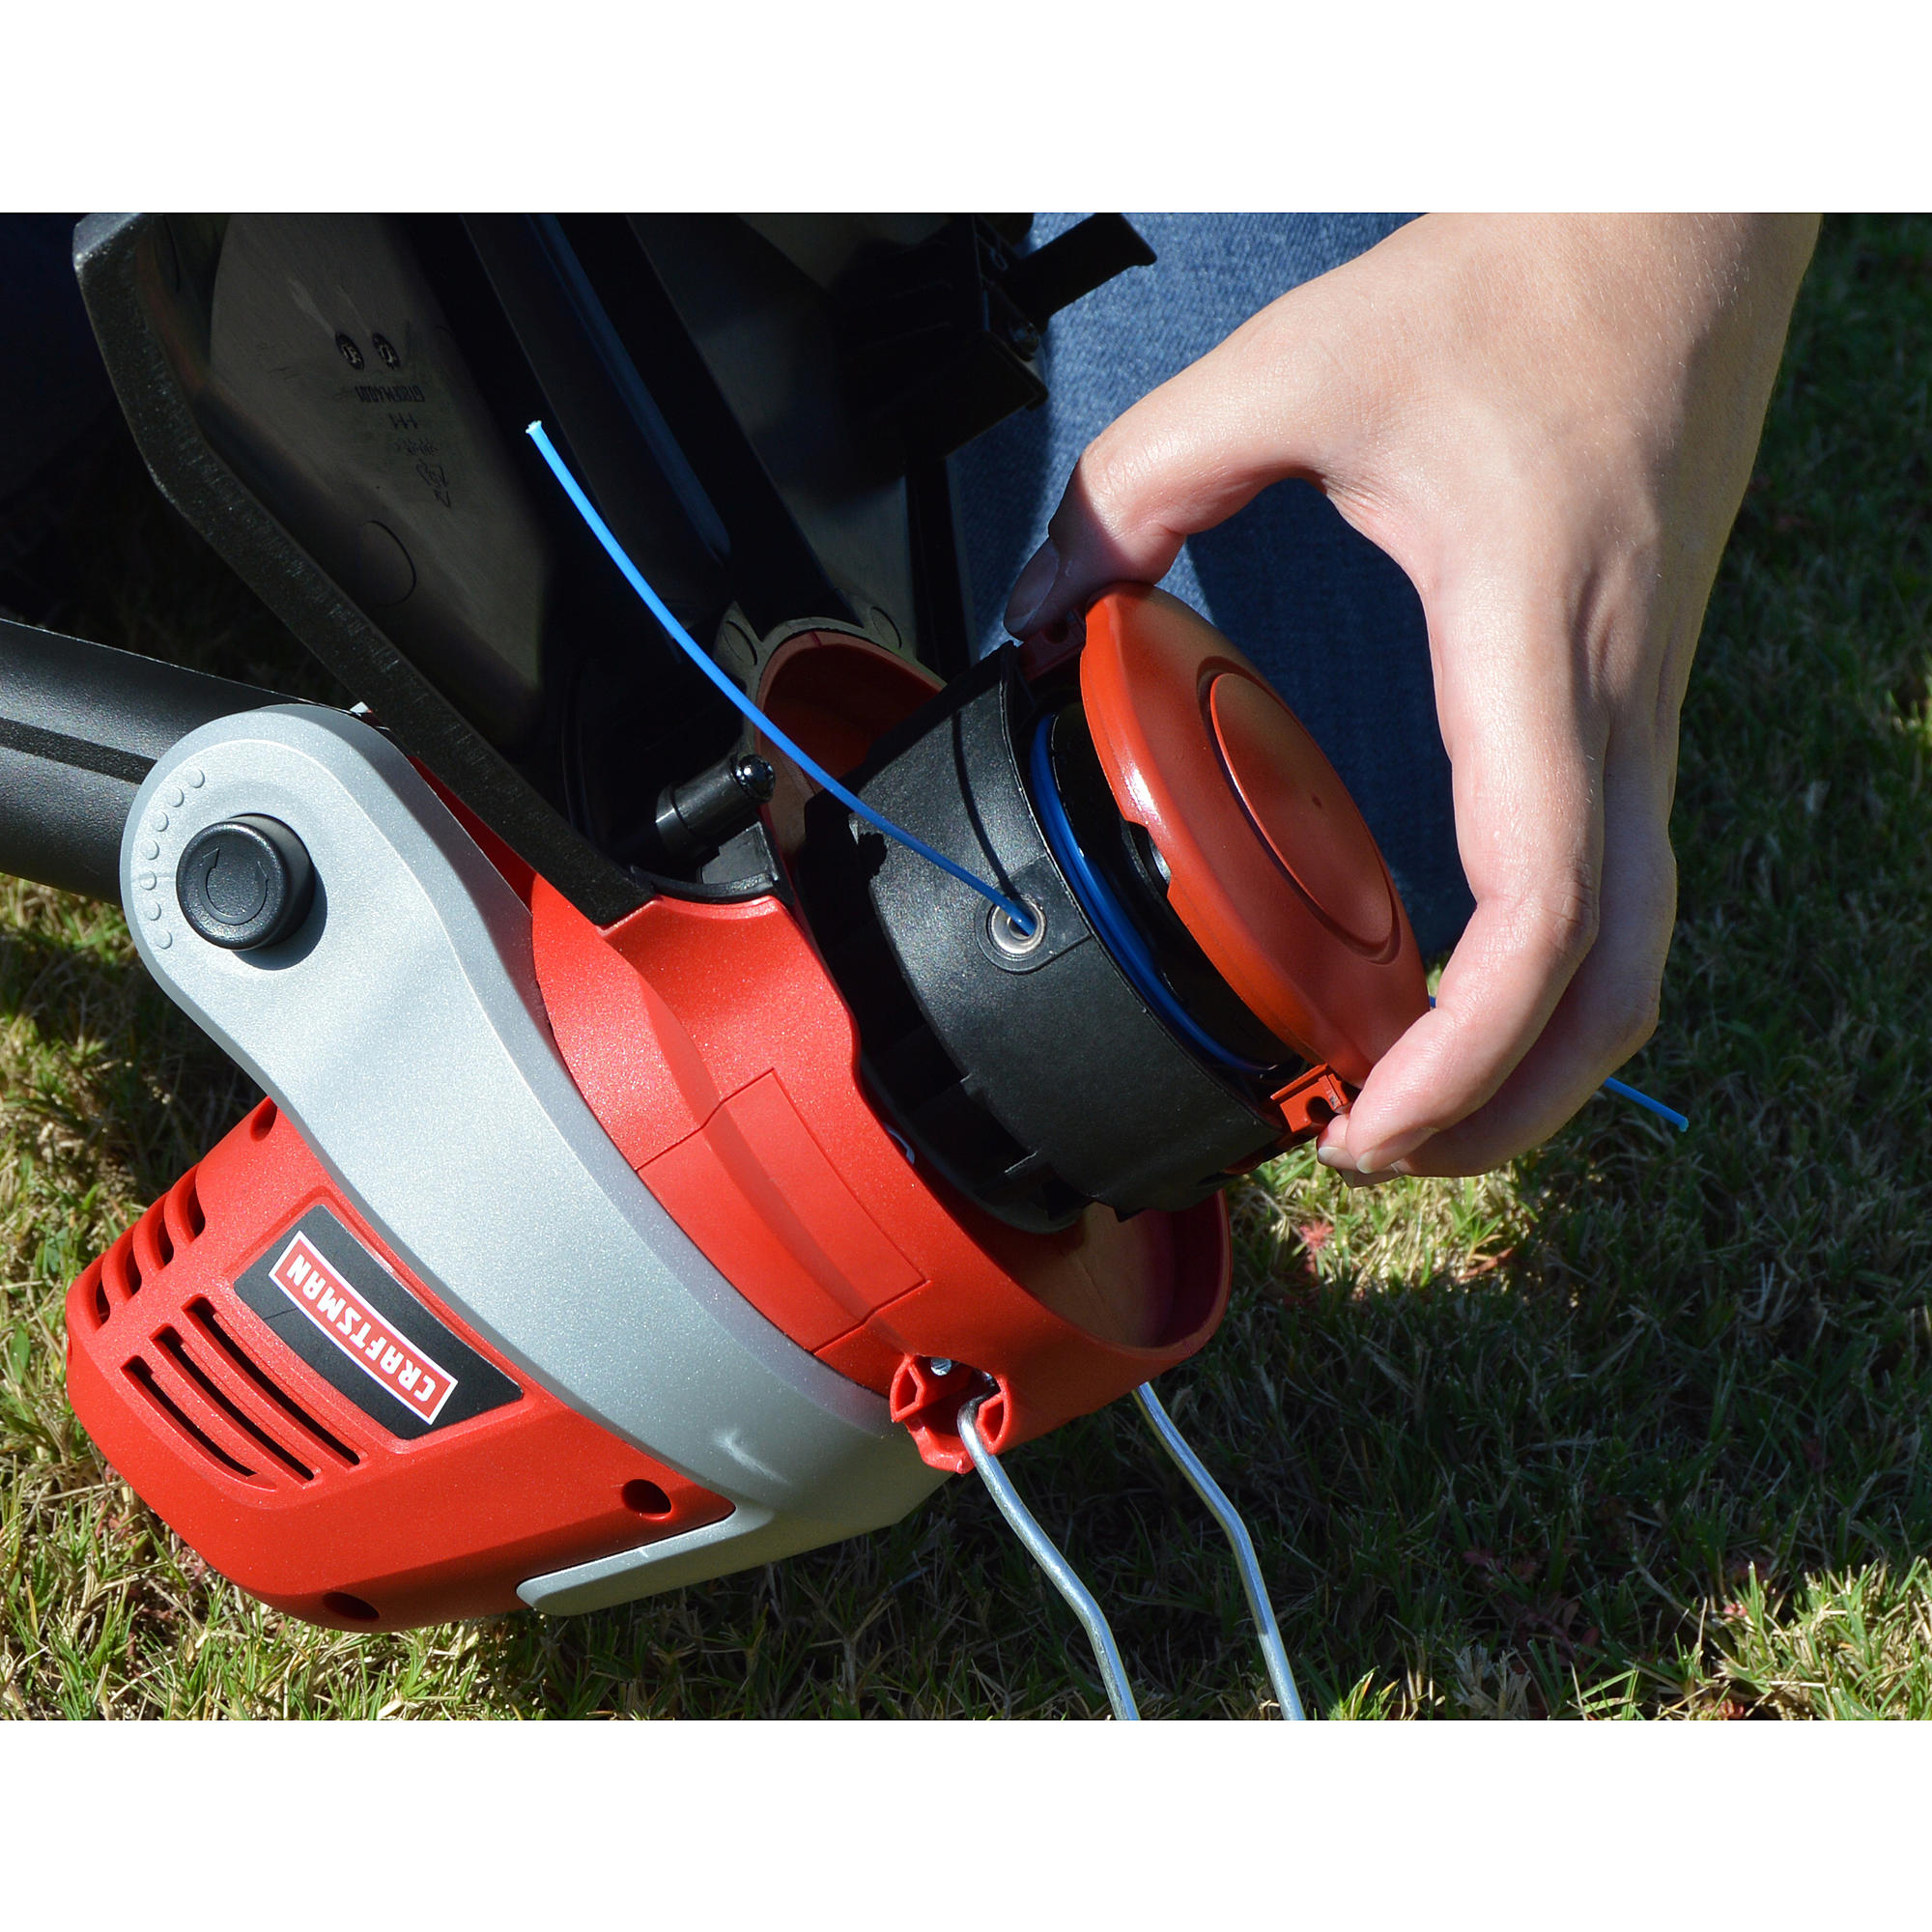 Common grass line trimmer problems - leaking gas | Symptom diagnosis